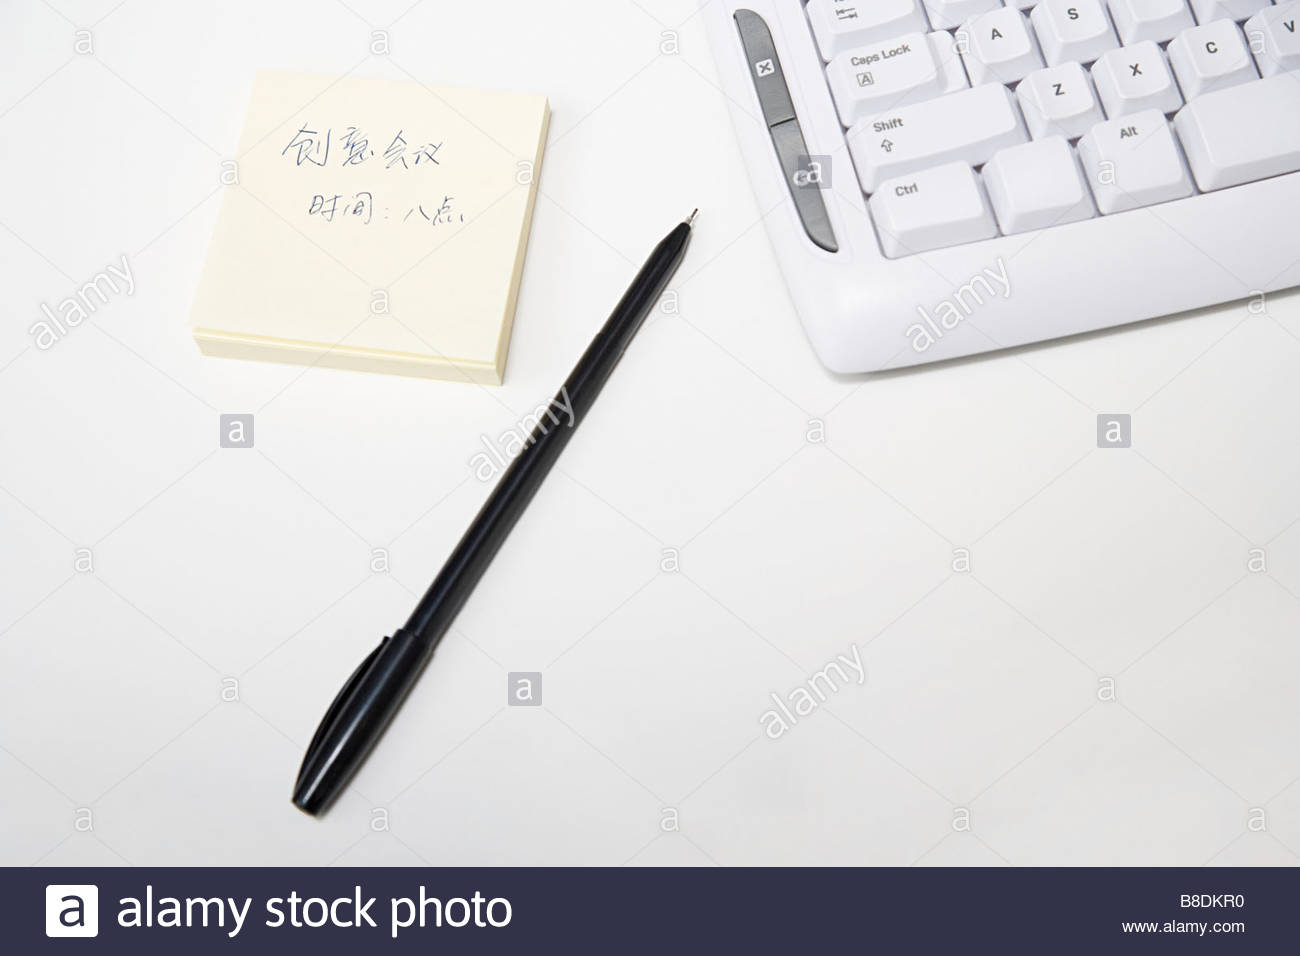 Note on desk - Stock Image